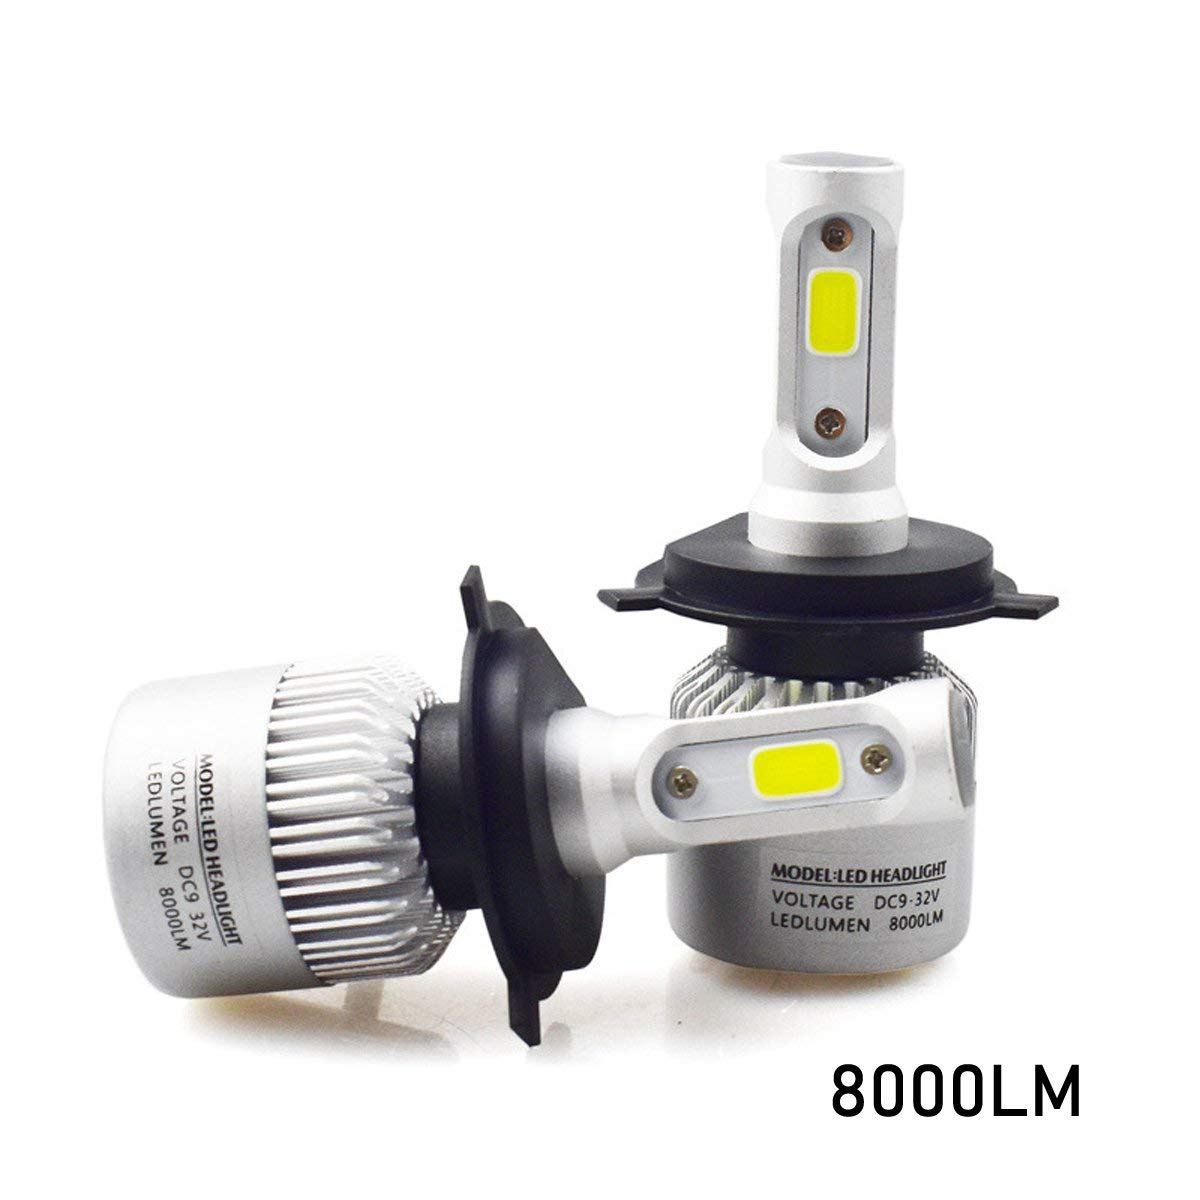 ZEZI 8000lm Xtremely Super Bright 6500K Xenon White High Power COB Mini H11 H8 H9 H11LL H8LL LED Headlight Conversion Kits Bulbs for Replacing Halogen Headlamp